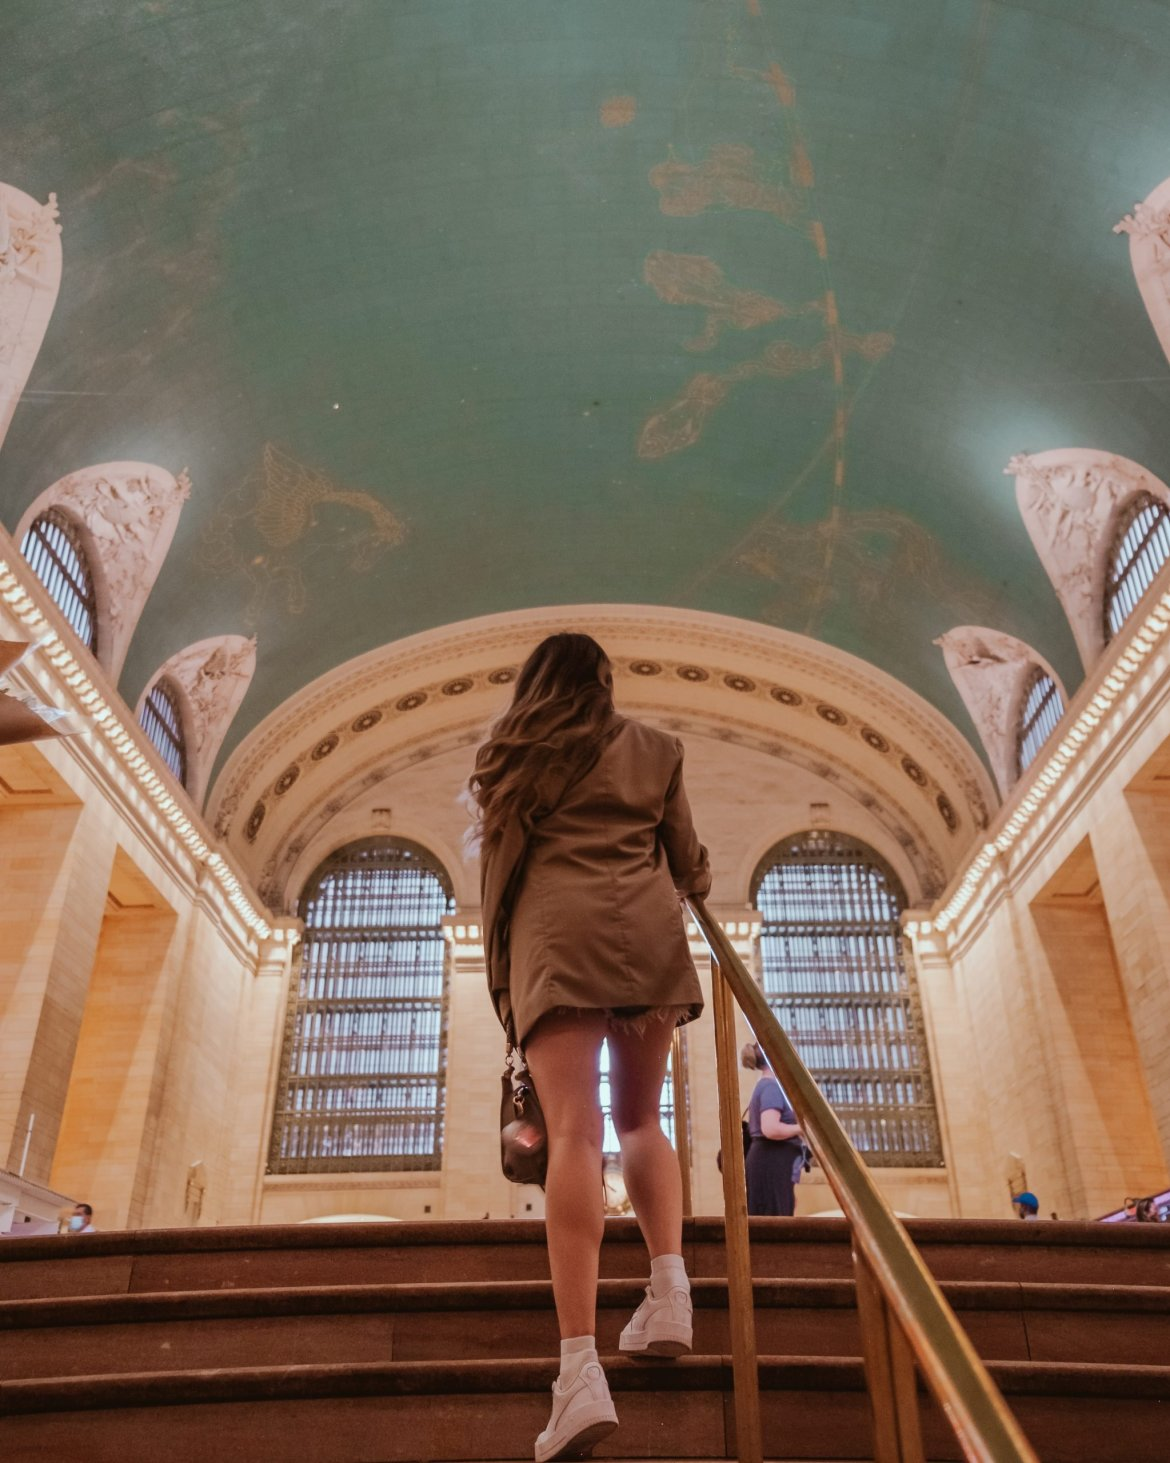 Grand Central Station photography